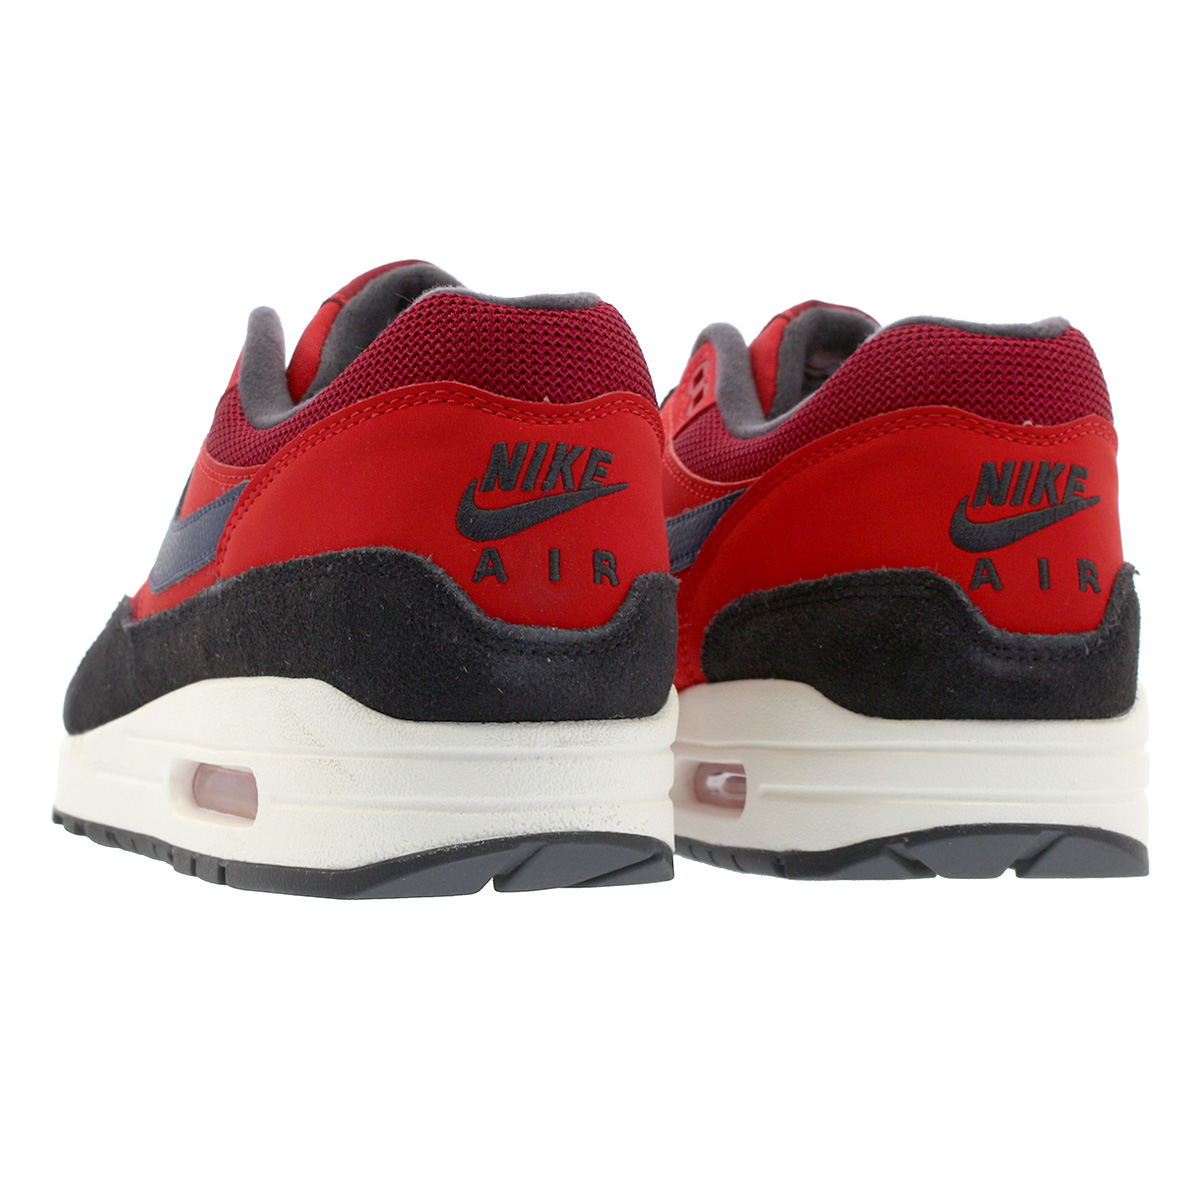 new arrival 843d0 8e634 NIKE AIR MAX 1 Kie Ney AMAX 1 RED CRUSH GREY NAVY ah8145-600